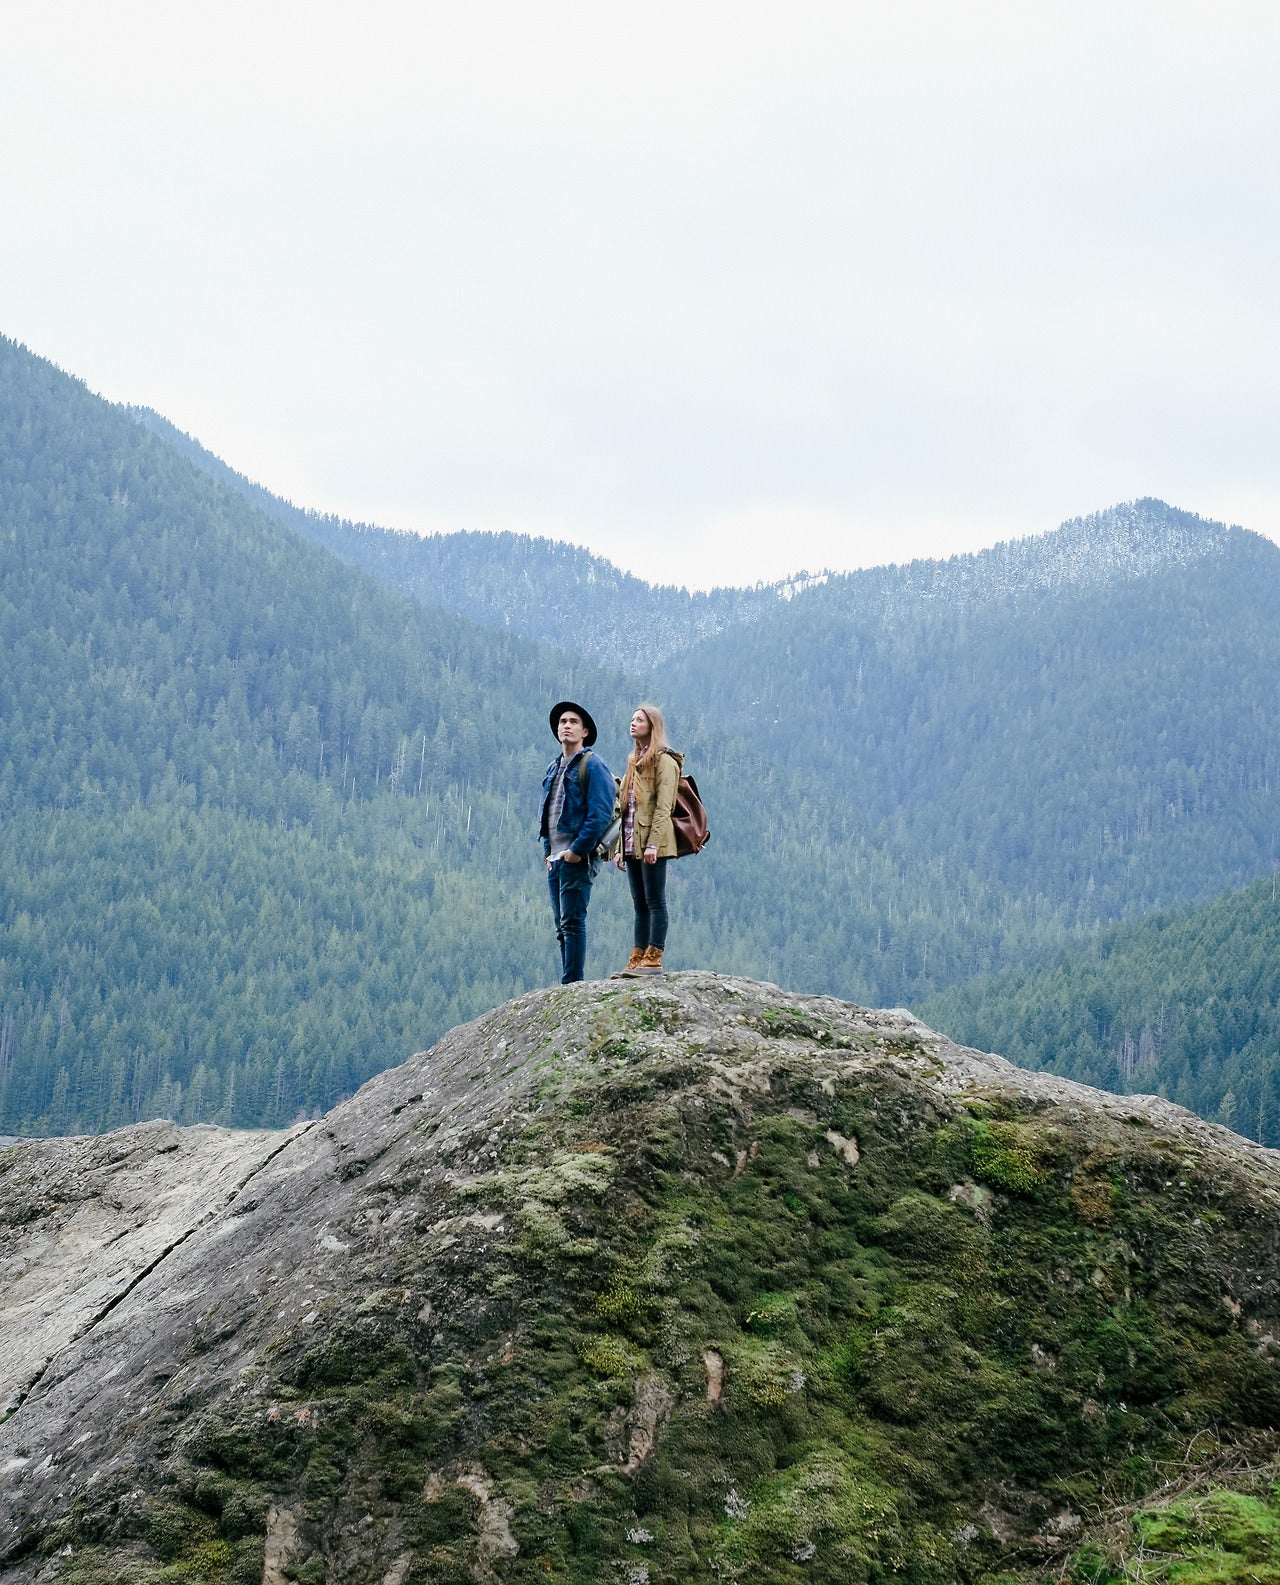 hike, hikers, beautiful views, hipsters, mountains, forest, earth day, eco friendly, camping, glamping